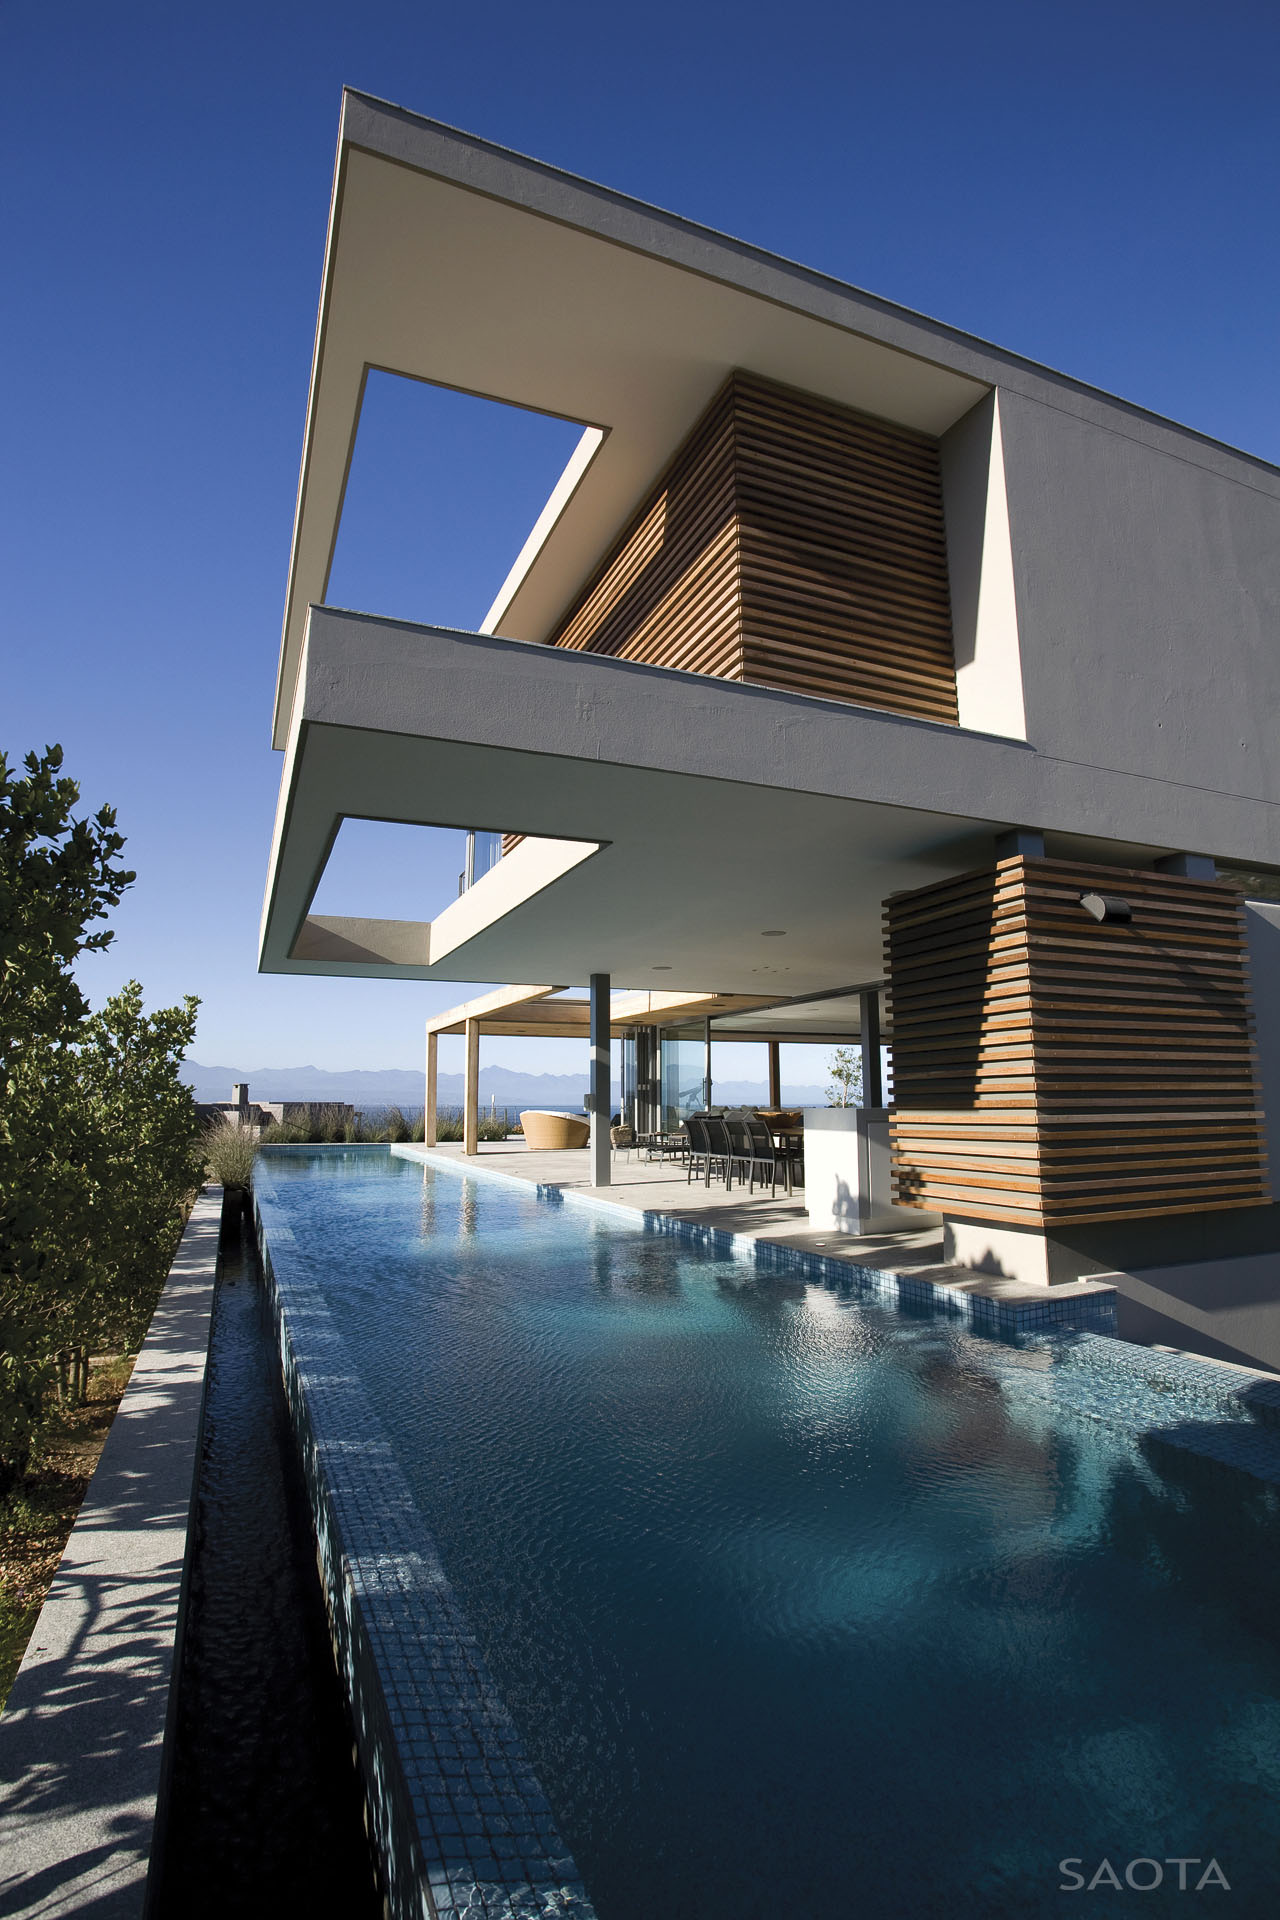 Contemporary House Design With Exterior Ceramic Panels And: Contemporary Beachfront Home In South Africa